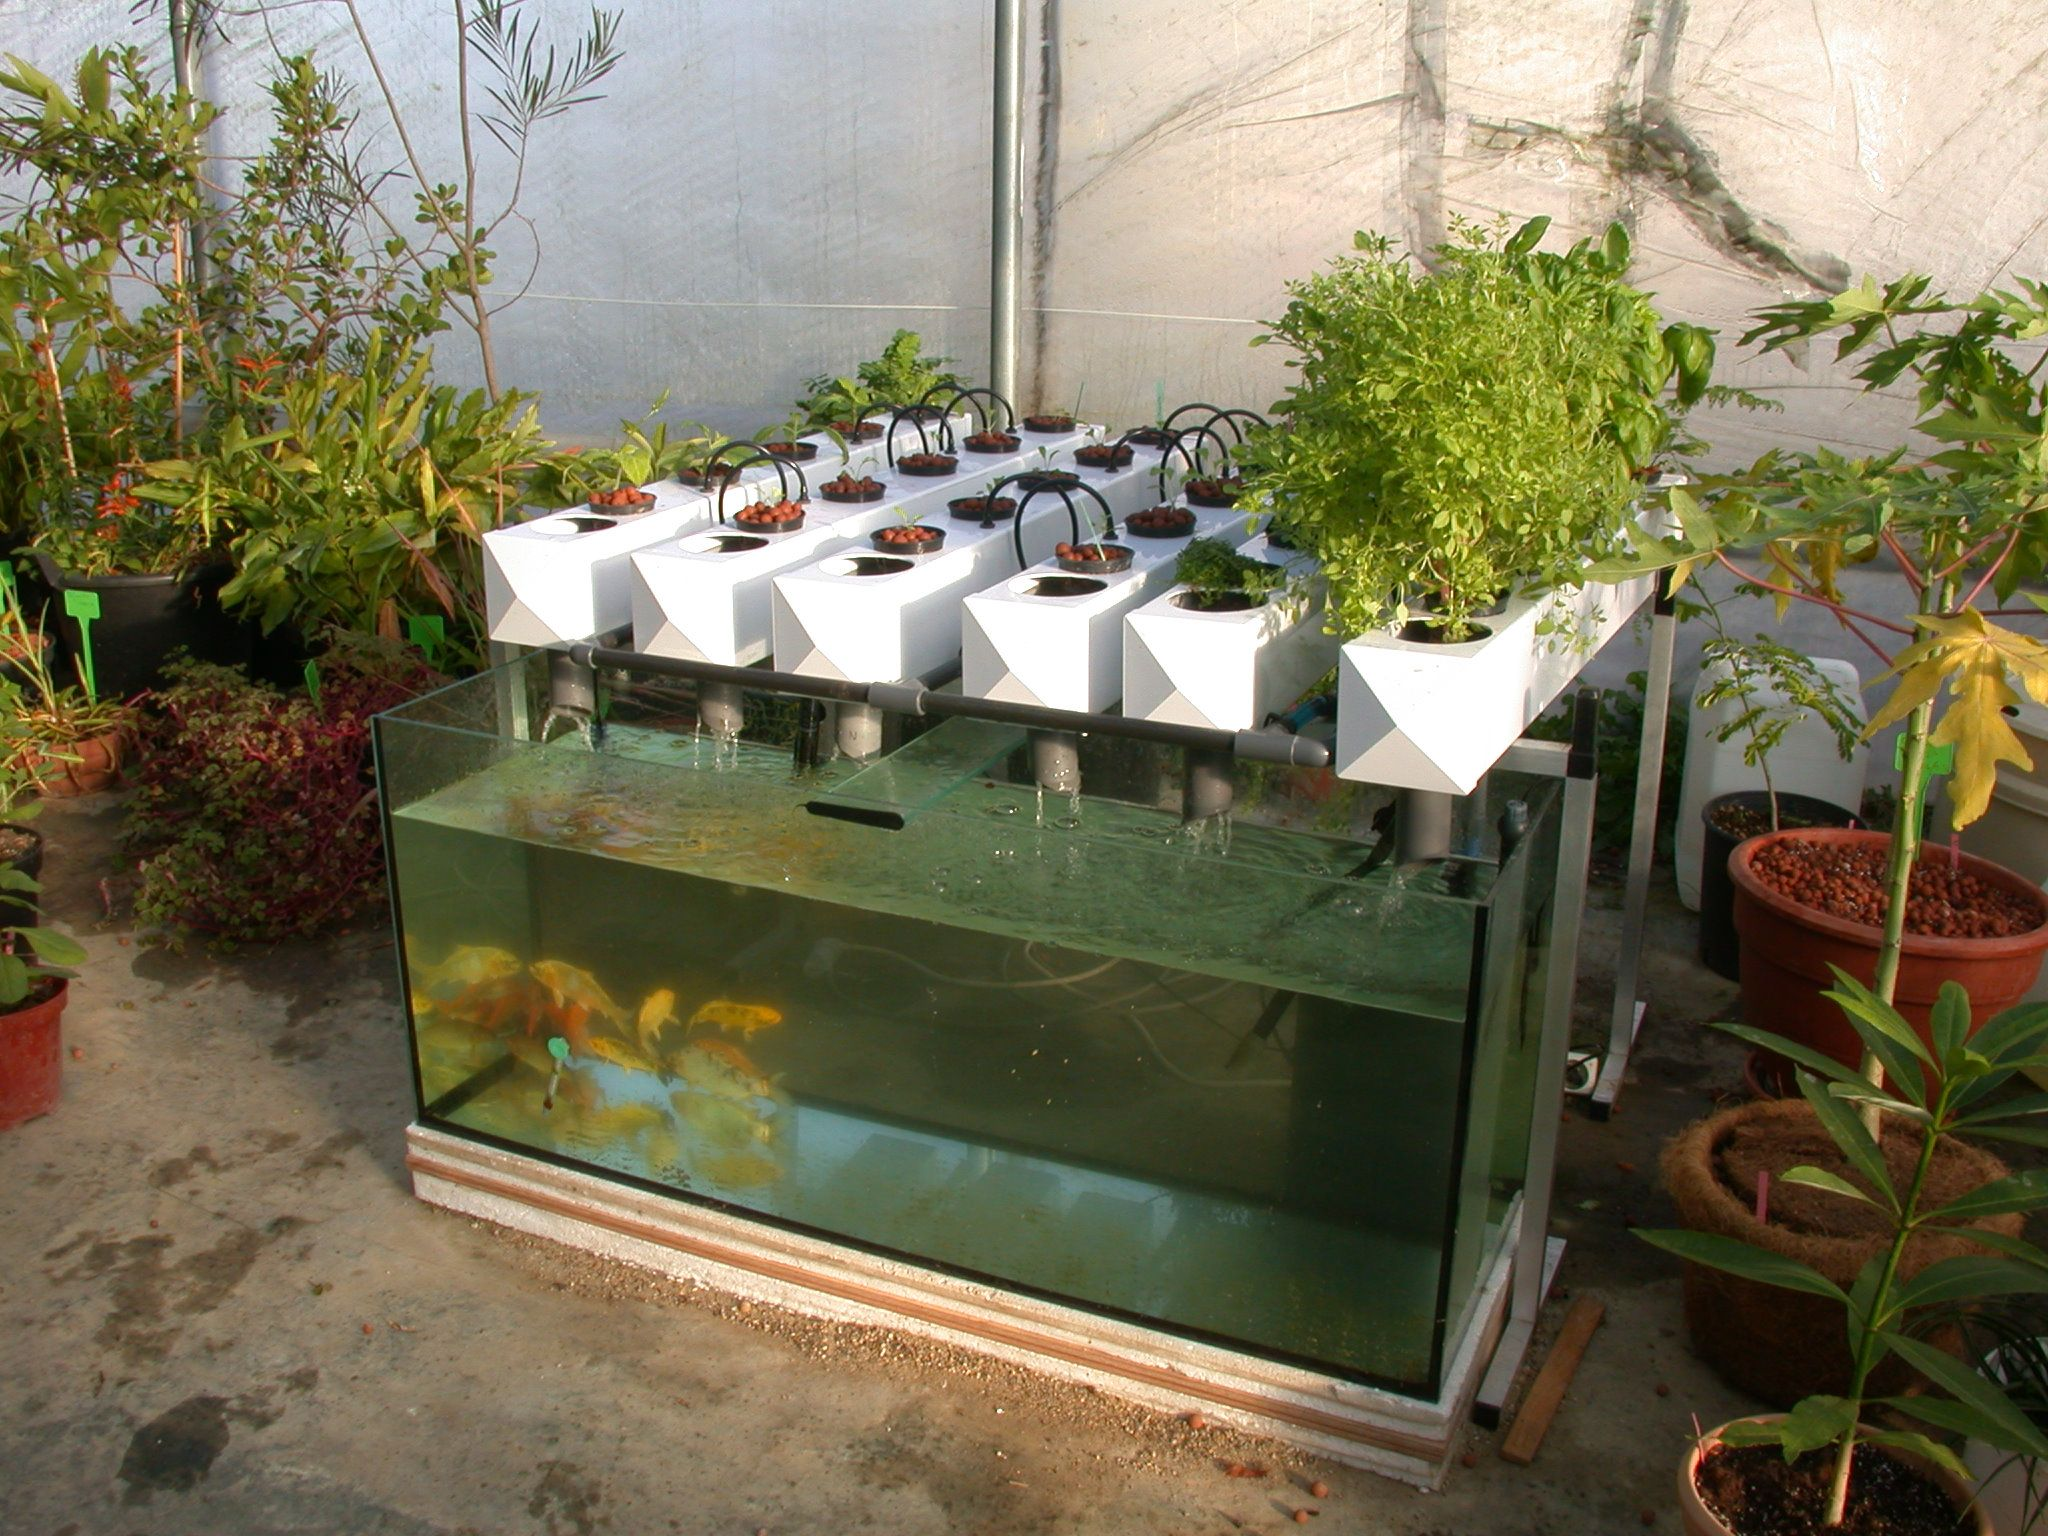 Aquaponics general hydroponics europe ghe official for Growing plants with fish